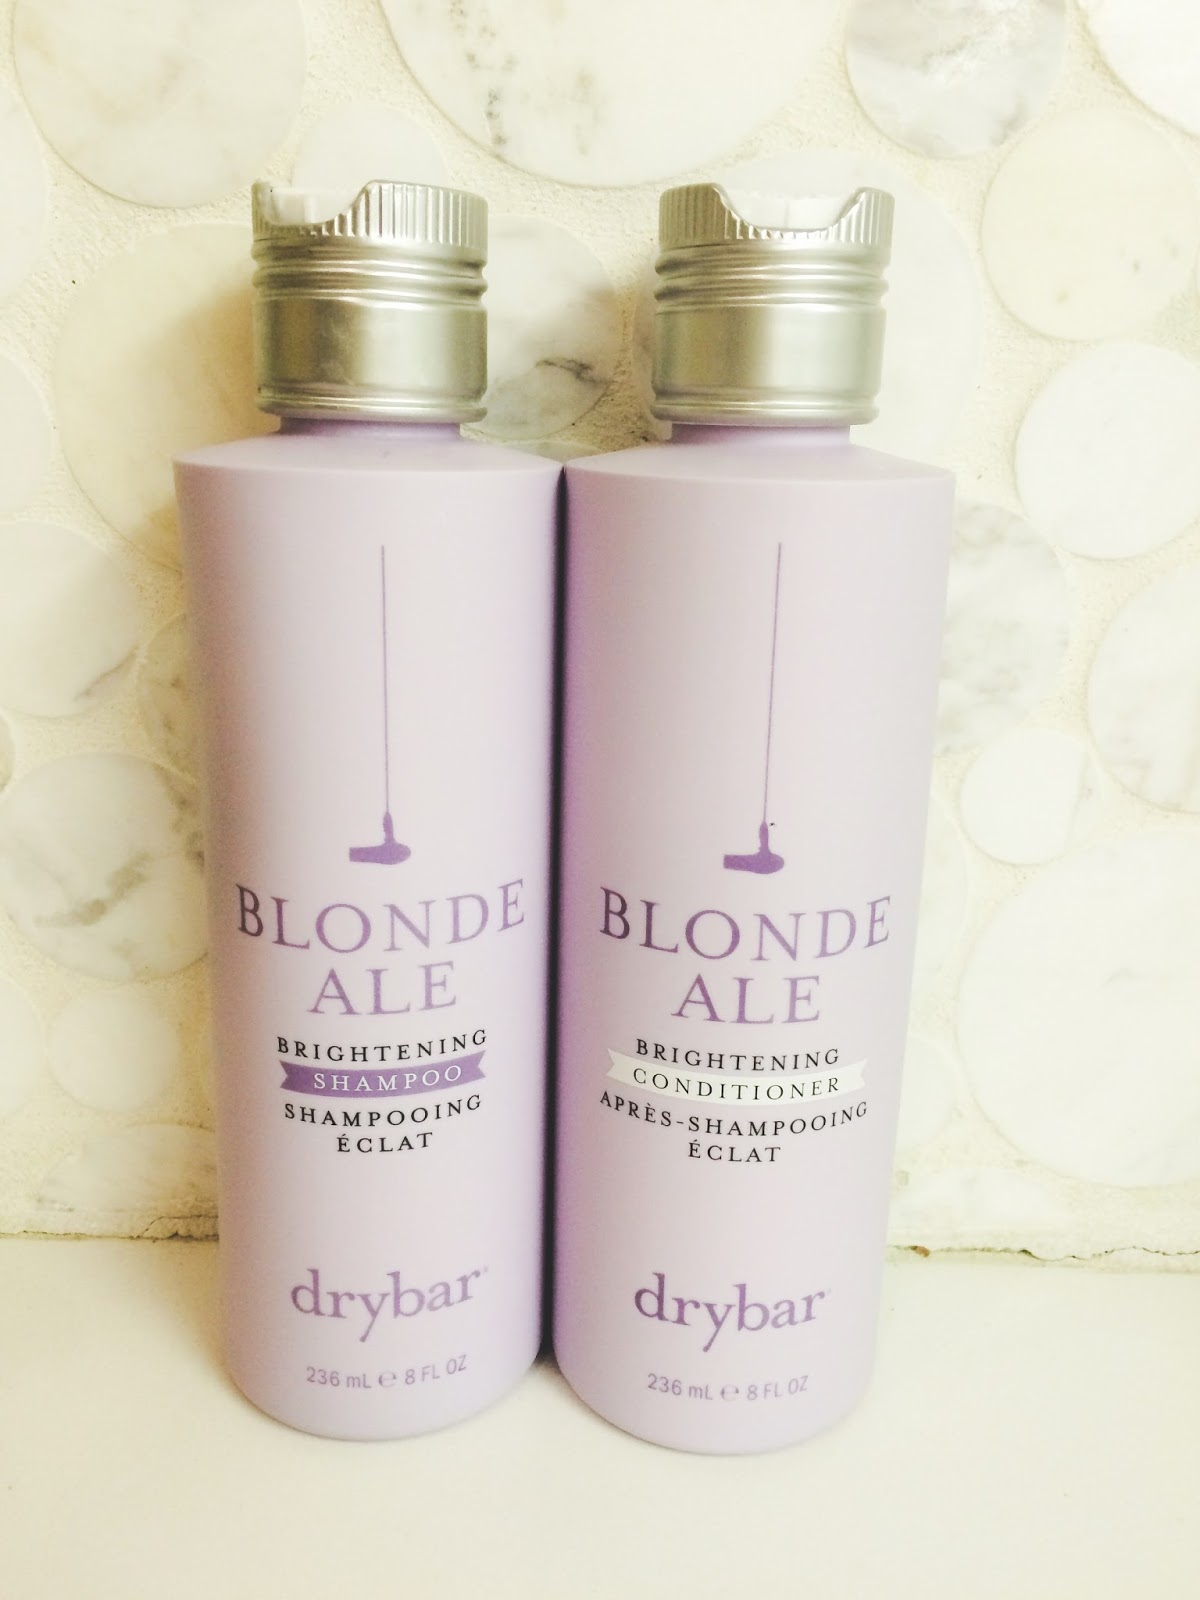 Drybar S New Blonde Ale Brightening Shampoo Is It Right For You